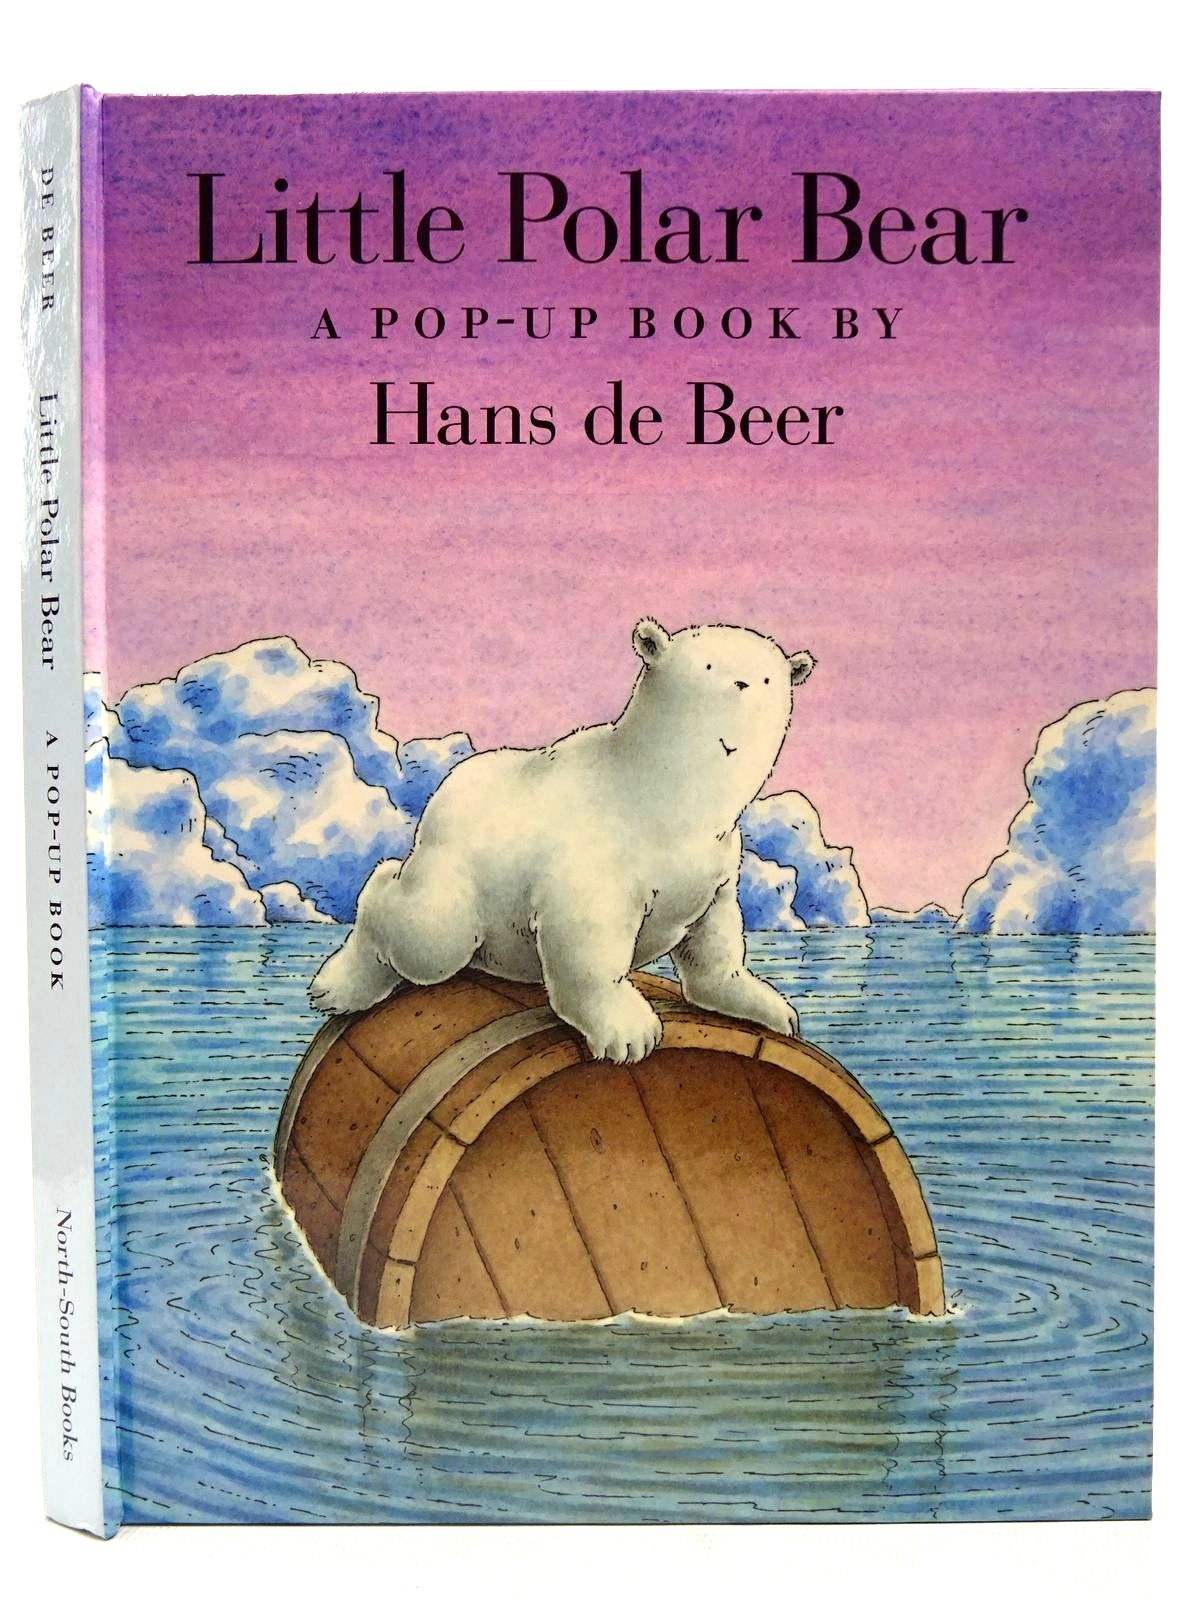 Photo of LITTLE POLAR BEAR A POP-UP BOOK written by De Beer, Hans illustrated by De Beer, Hans published by North South Books (STOCK CODE: 2126585)  for sale by Stella & Rose's Books